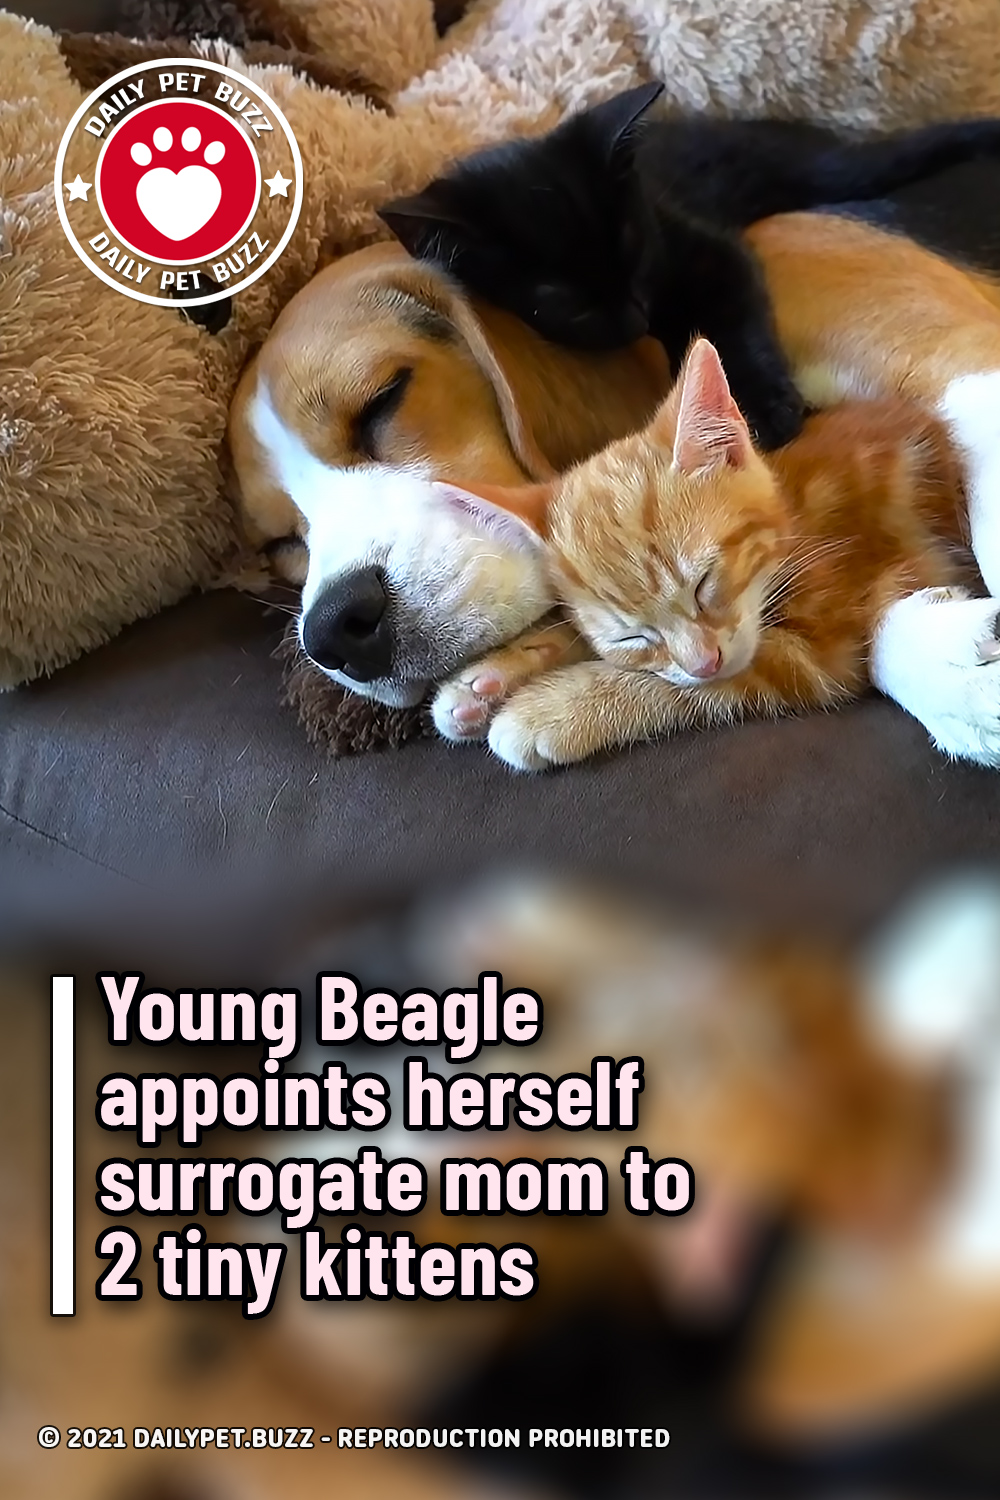 Young Beagle appoints herself surrogate mom to 2 tiny kittens